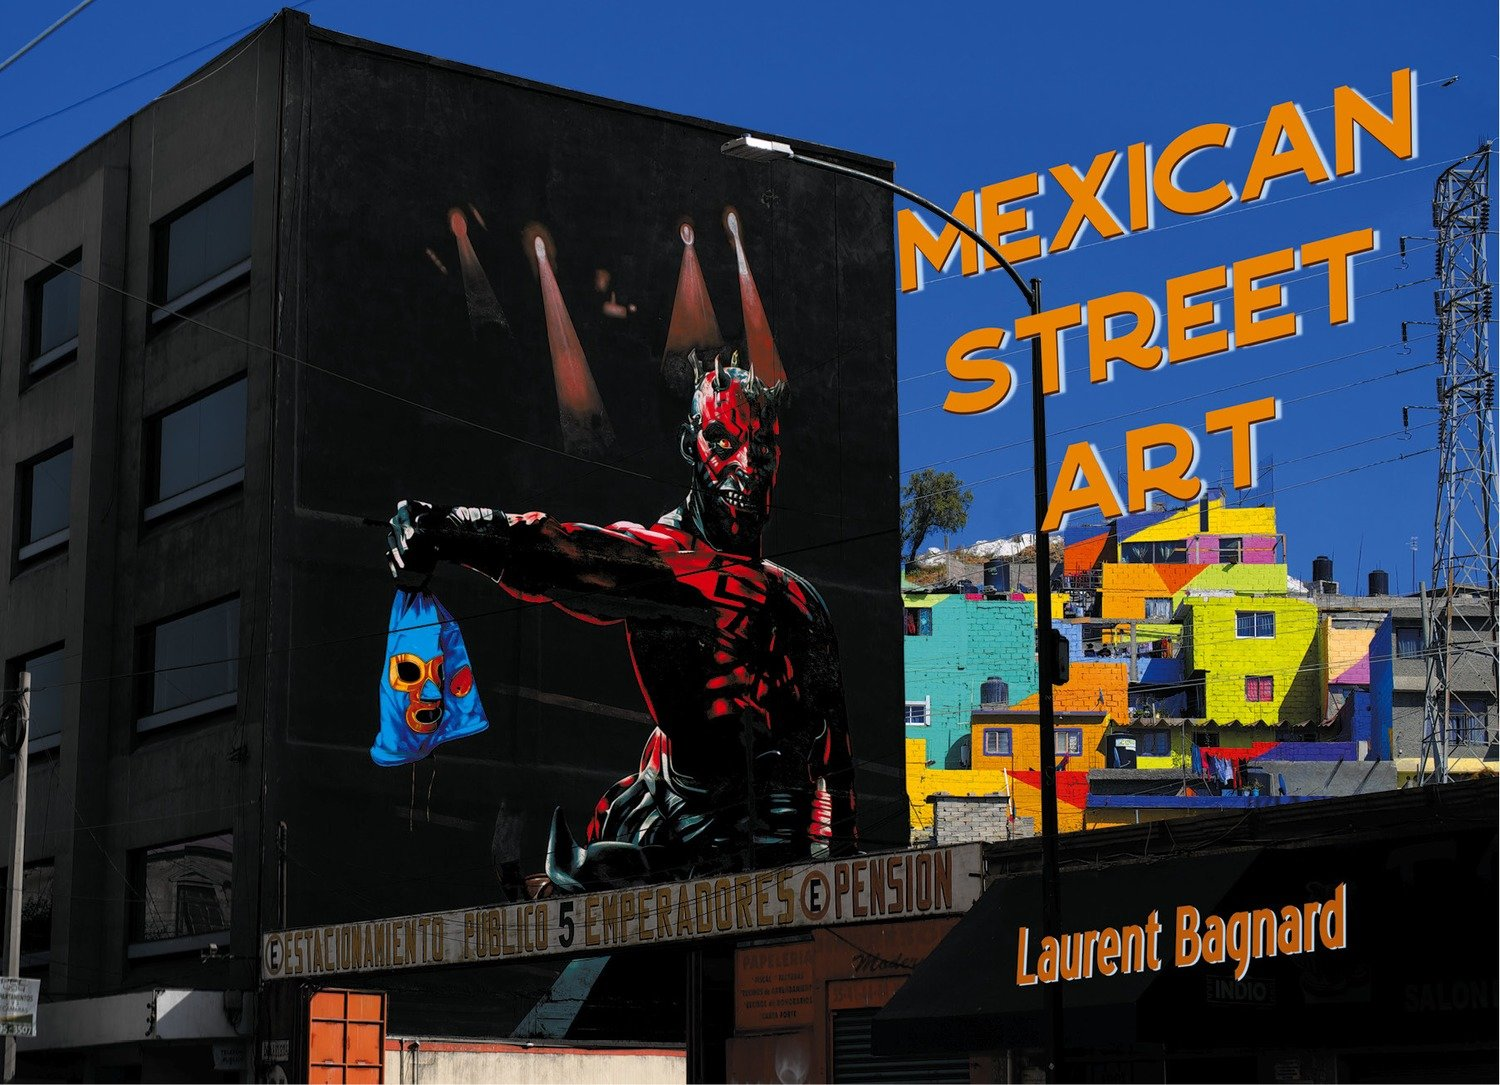 'Mexican Street Art', par Laurent Bagnard (broché)